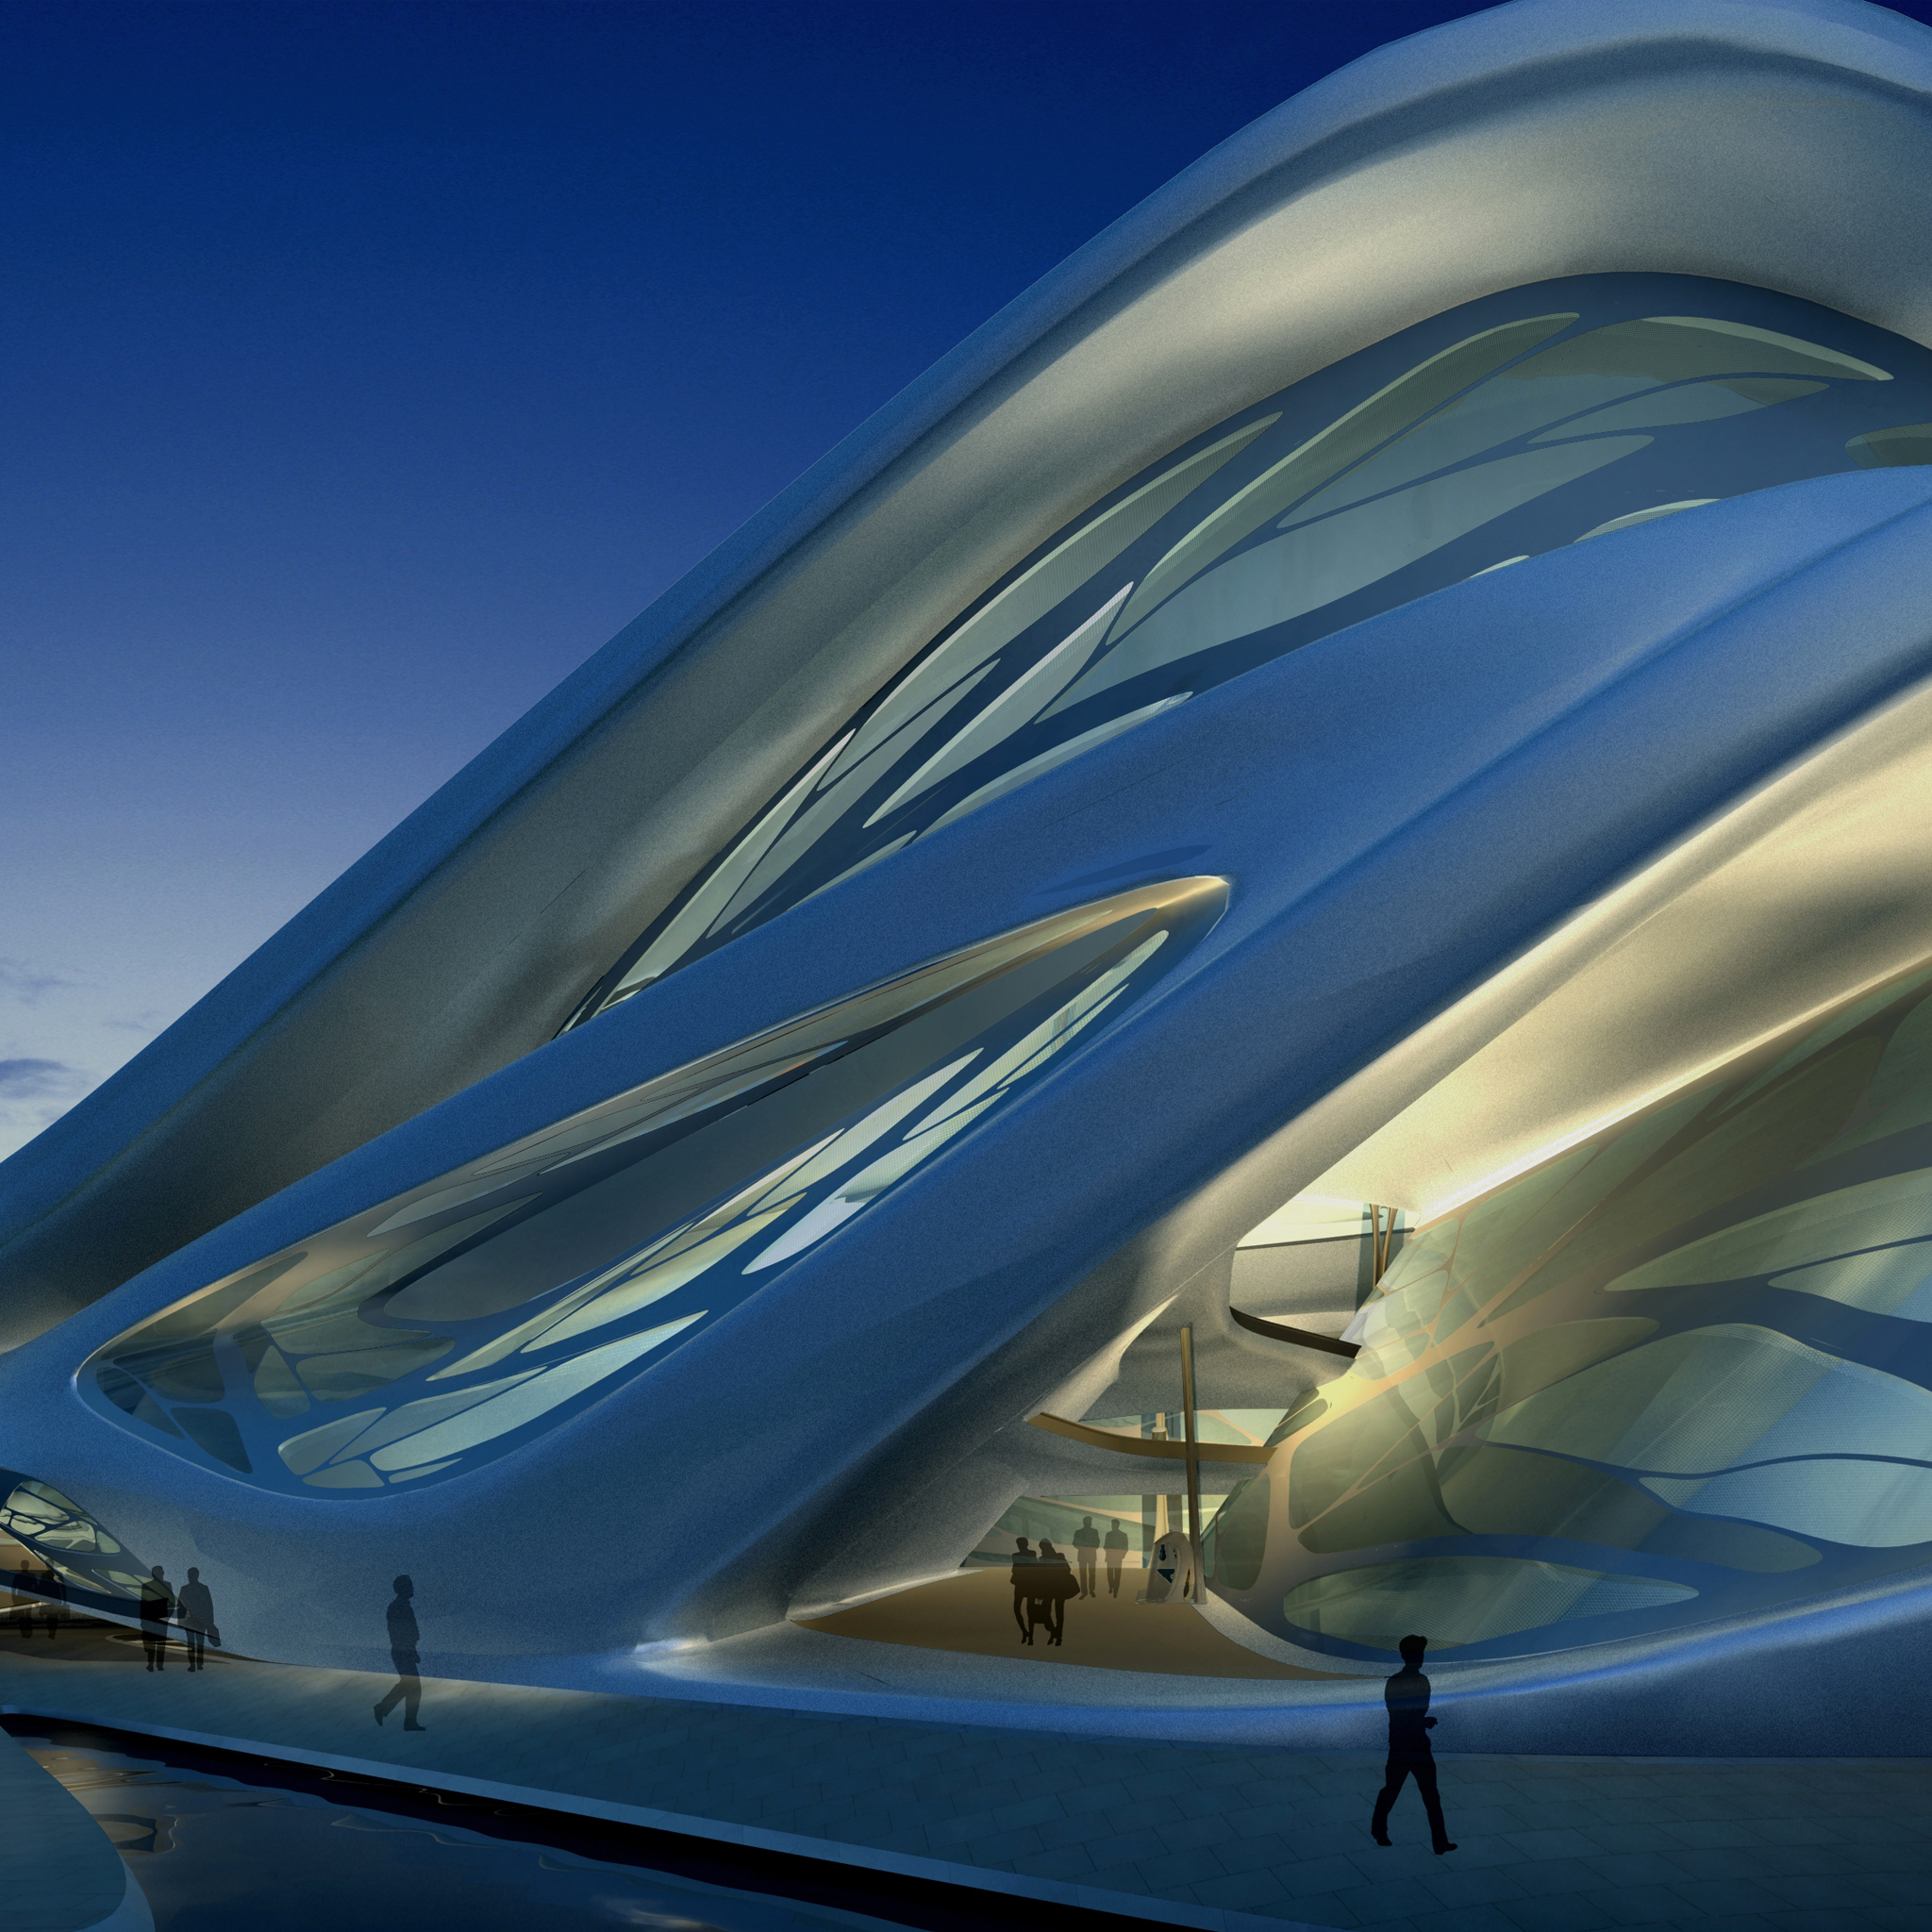 Abu Dhabi Arts Center 3Wallpapers iPad Retina Abu Dhabi Arts Center   iPad Retina